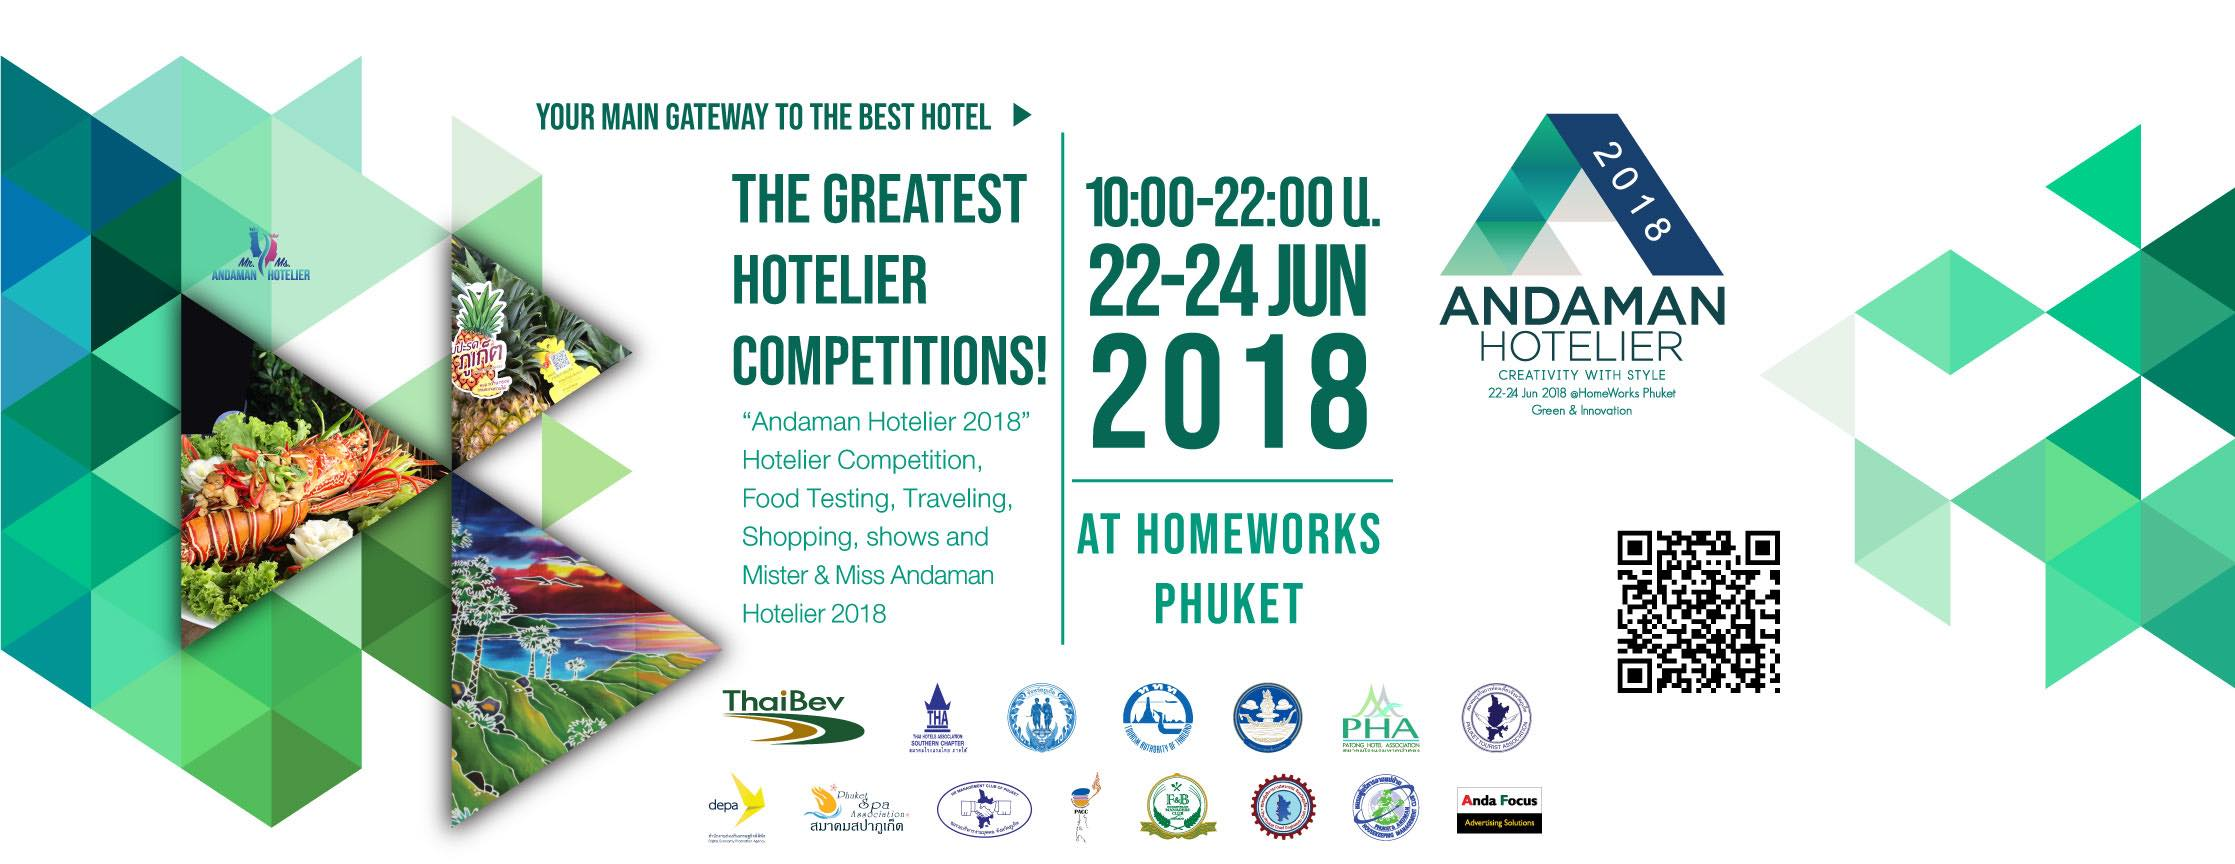 Andaman Hotelier 2018